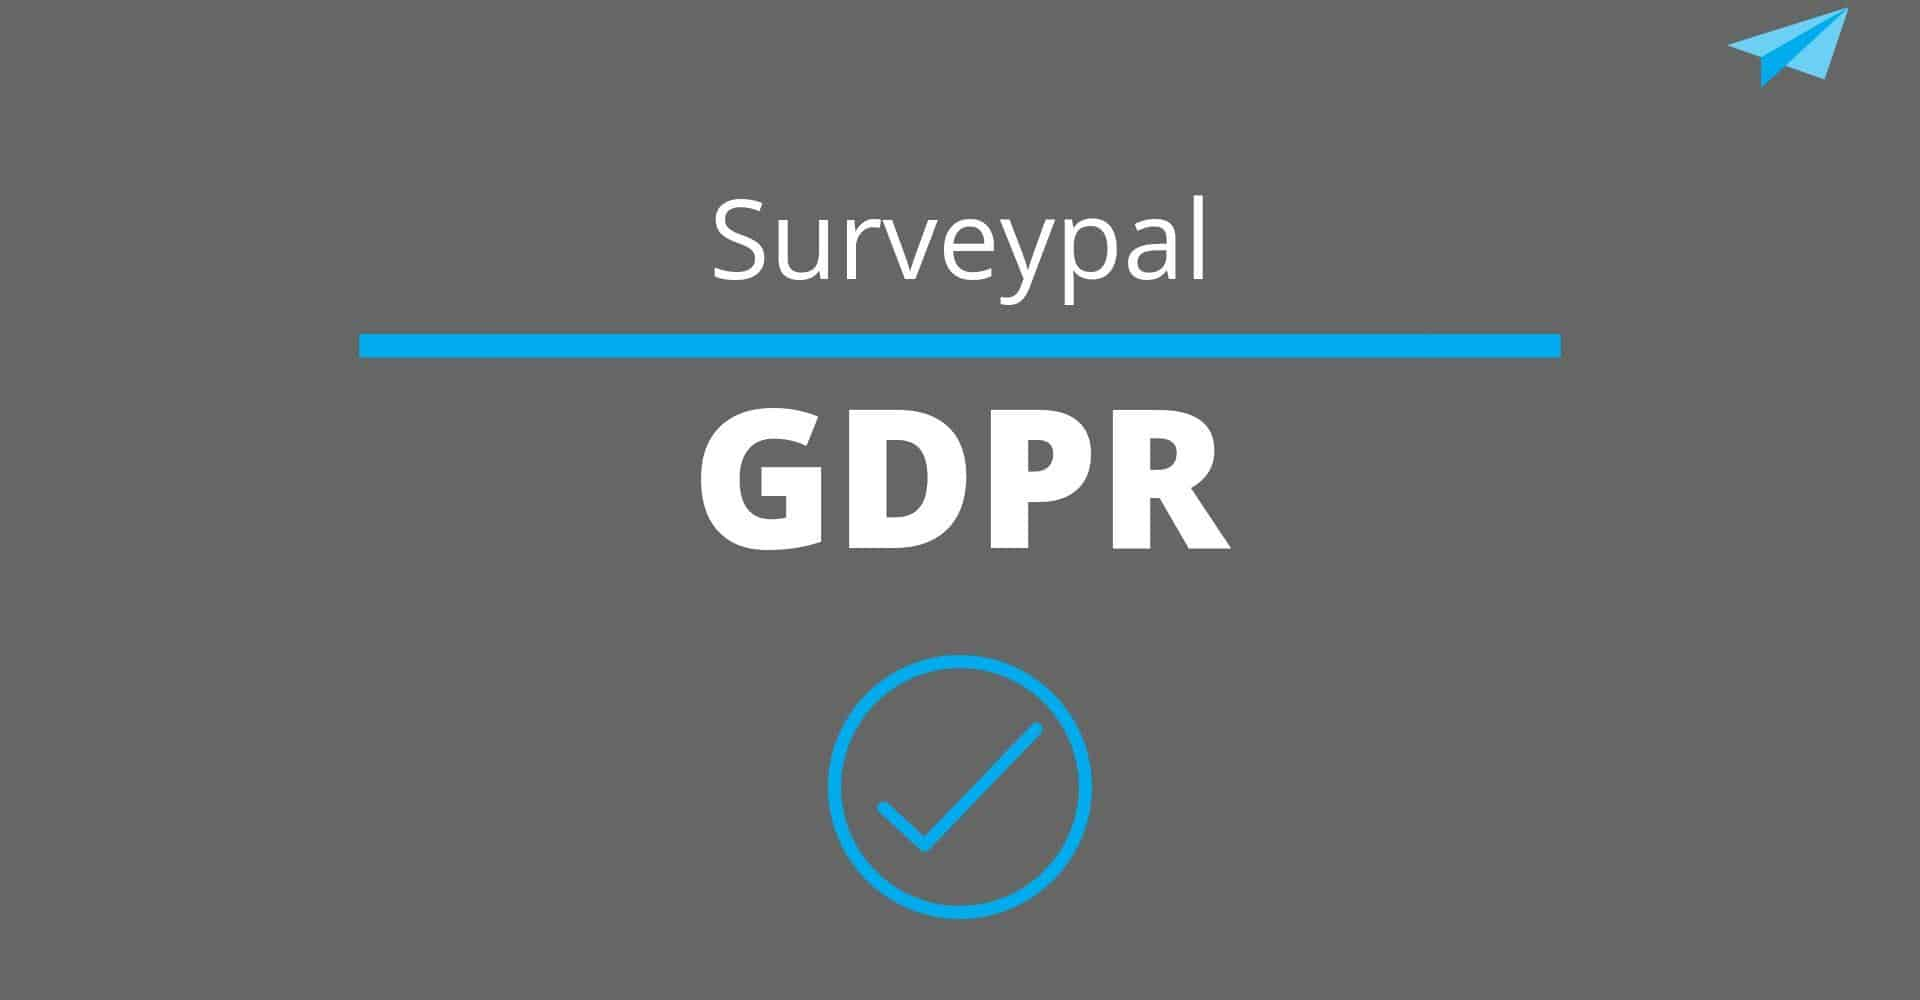 Text: Surveypal, GDPR, against a gray background